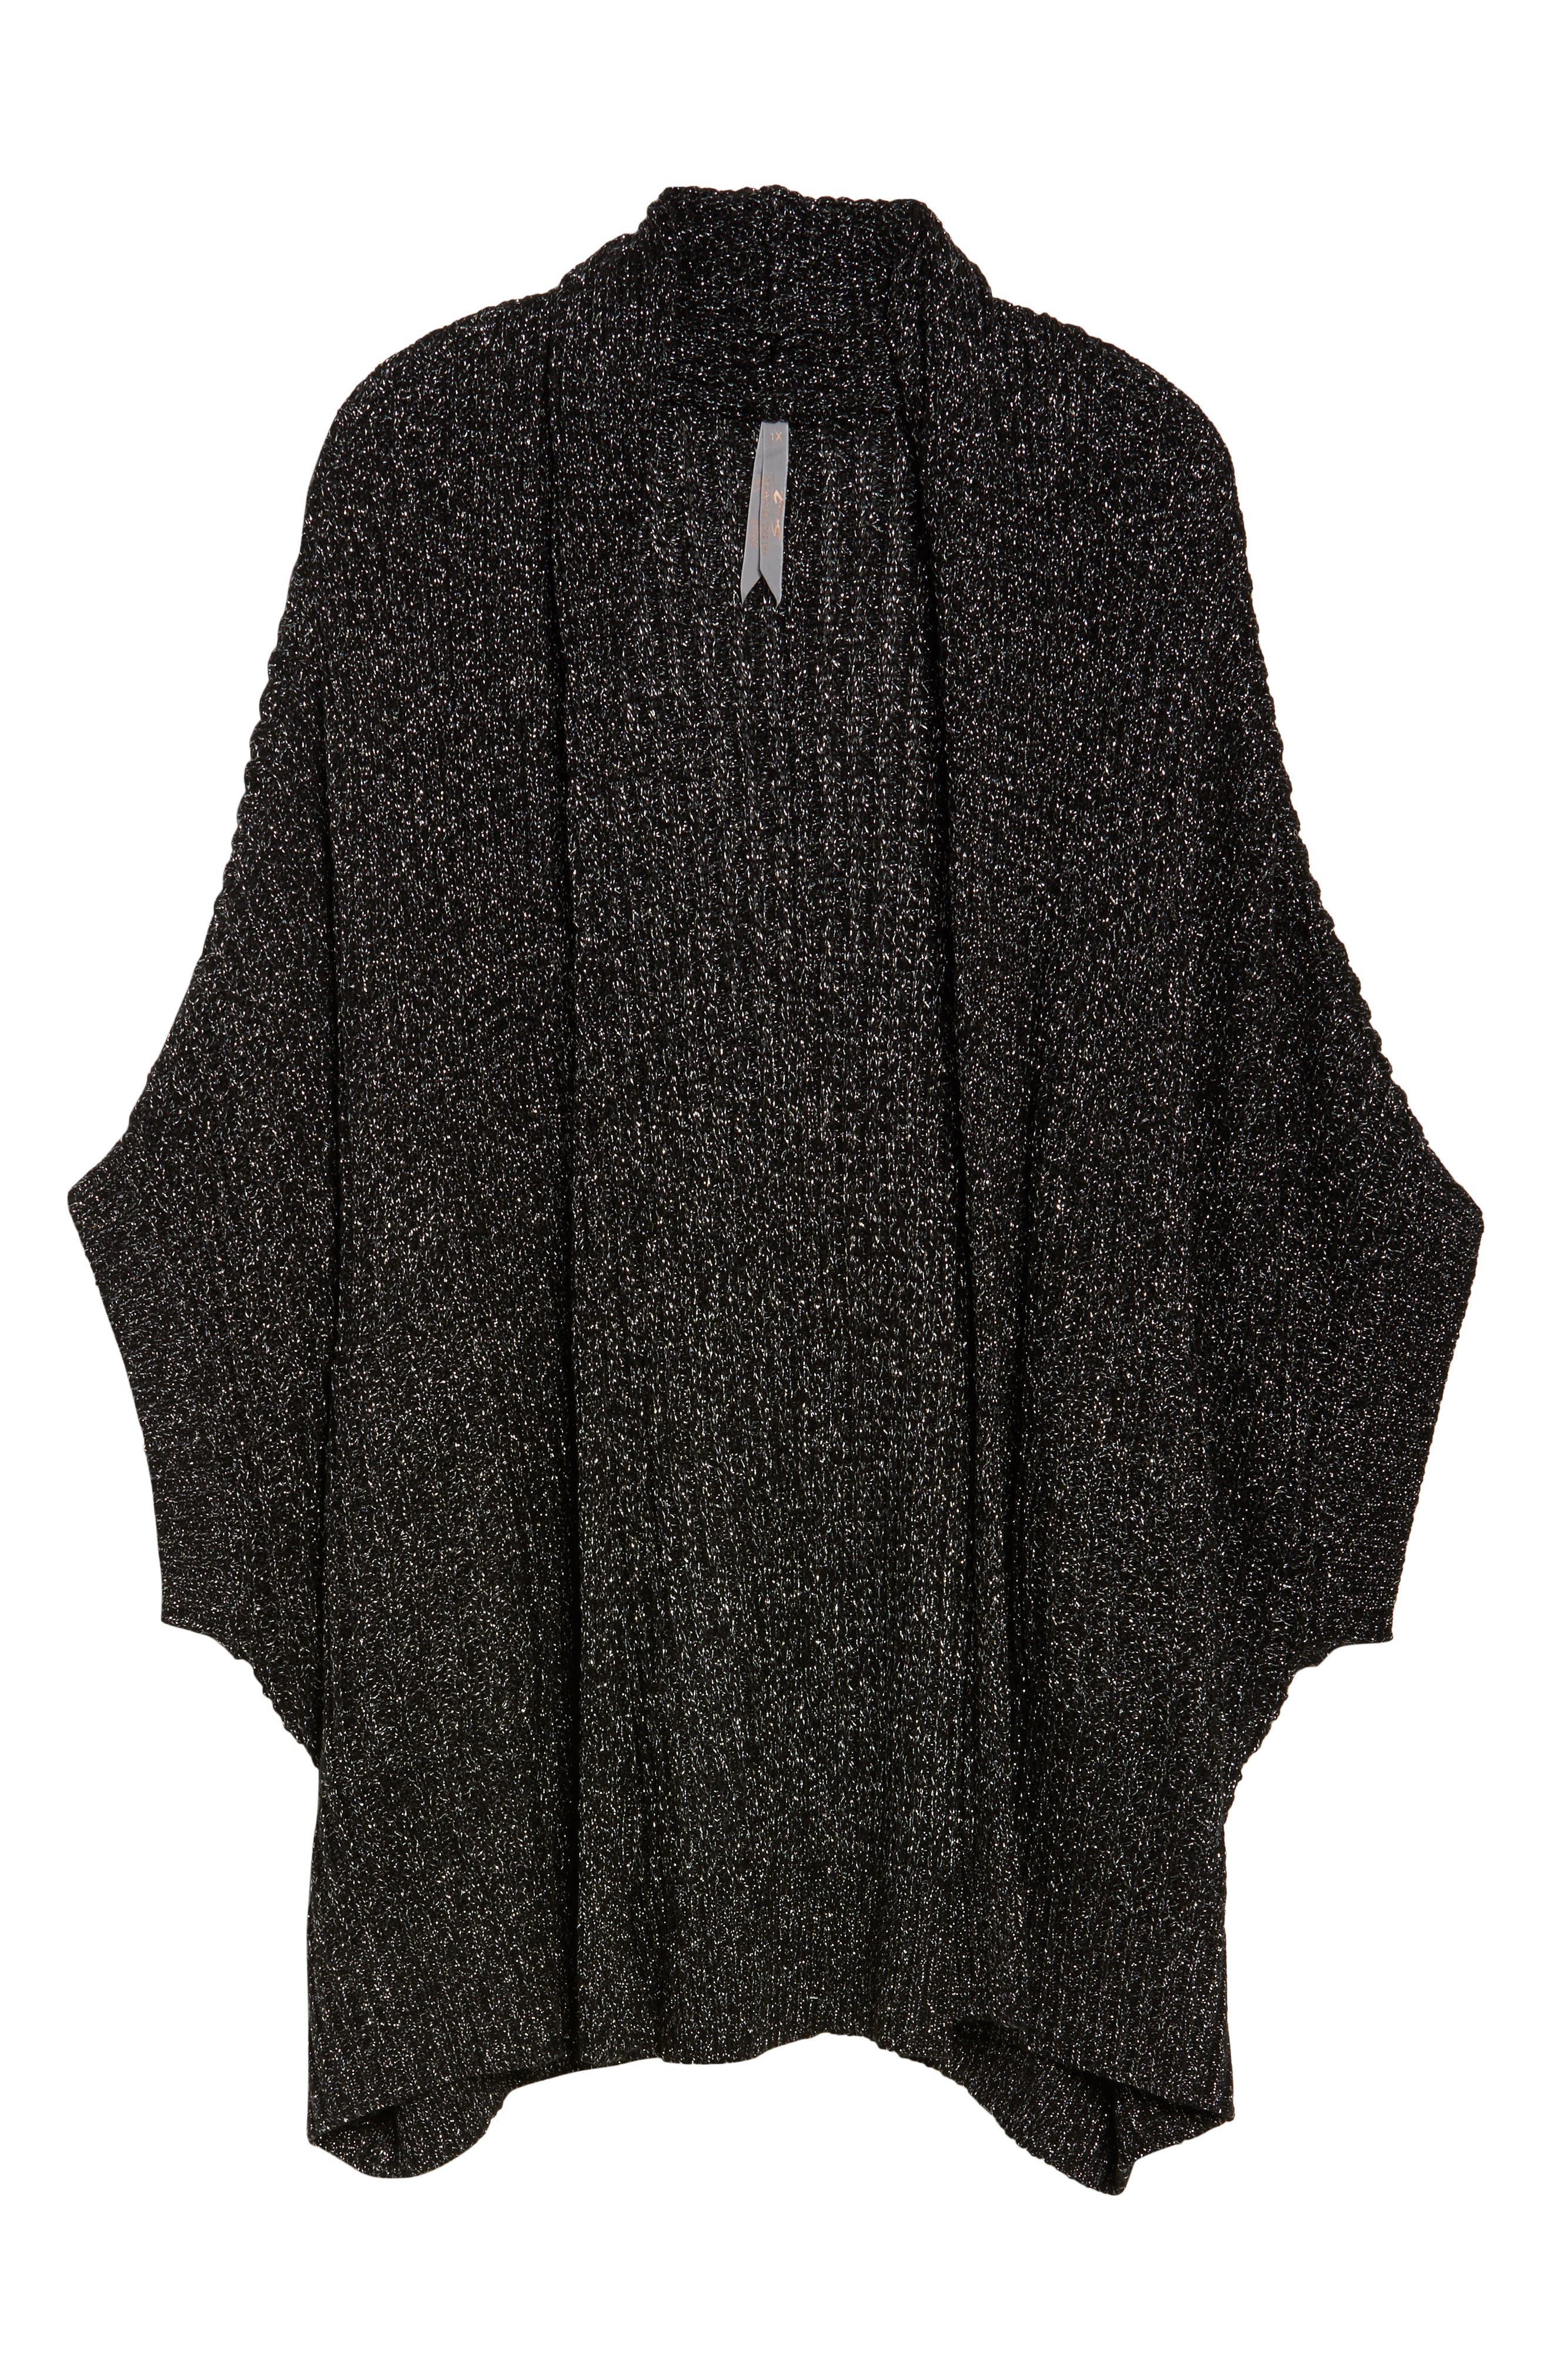 Cocoon Cardigan,                             Alternate thumbnail 6, color,                             017